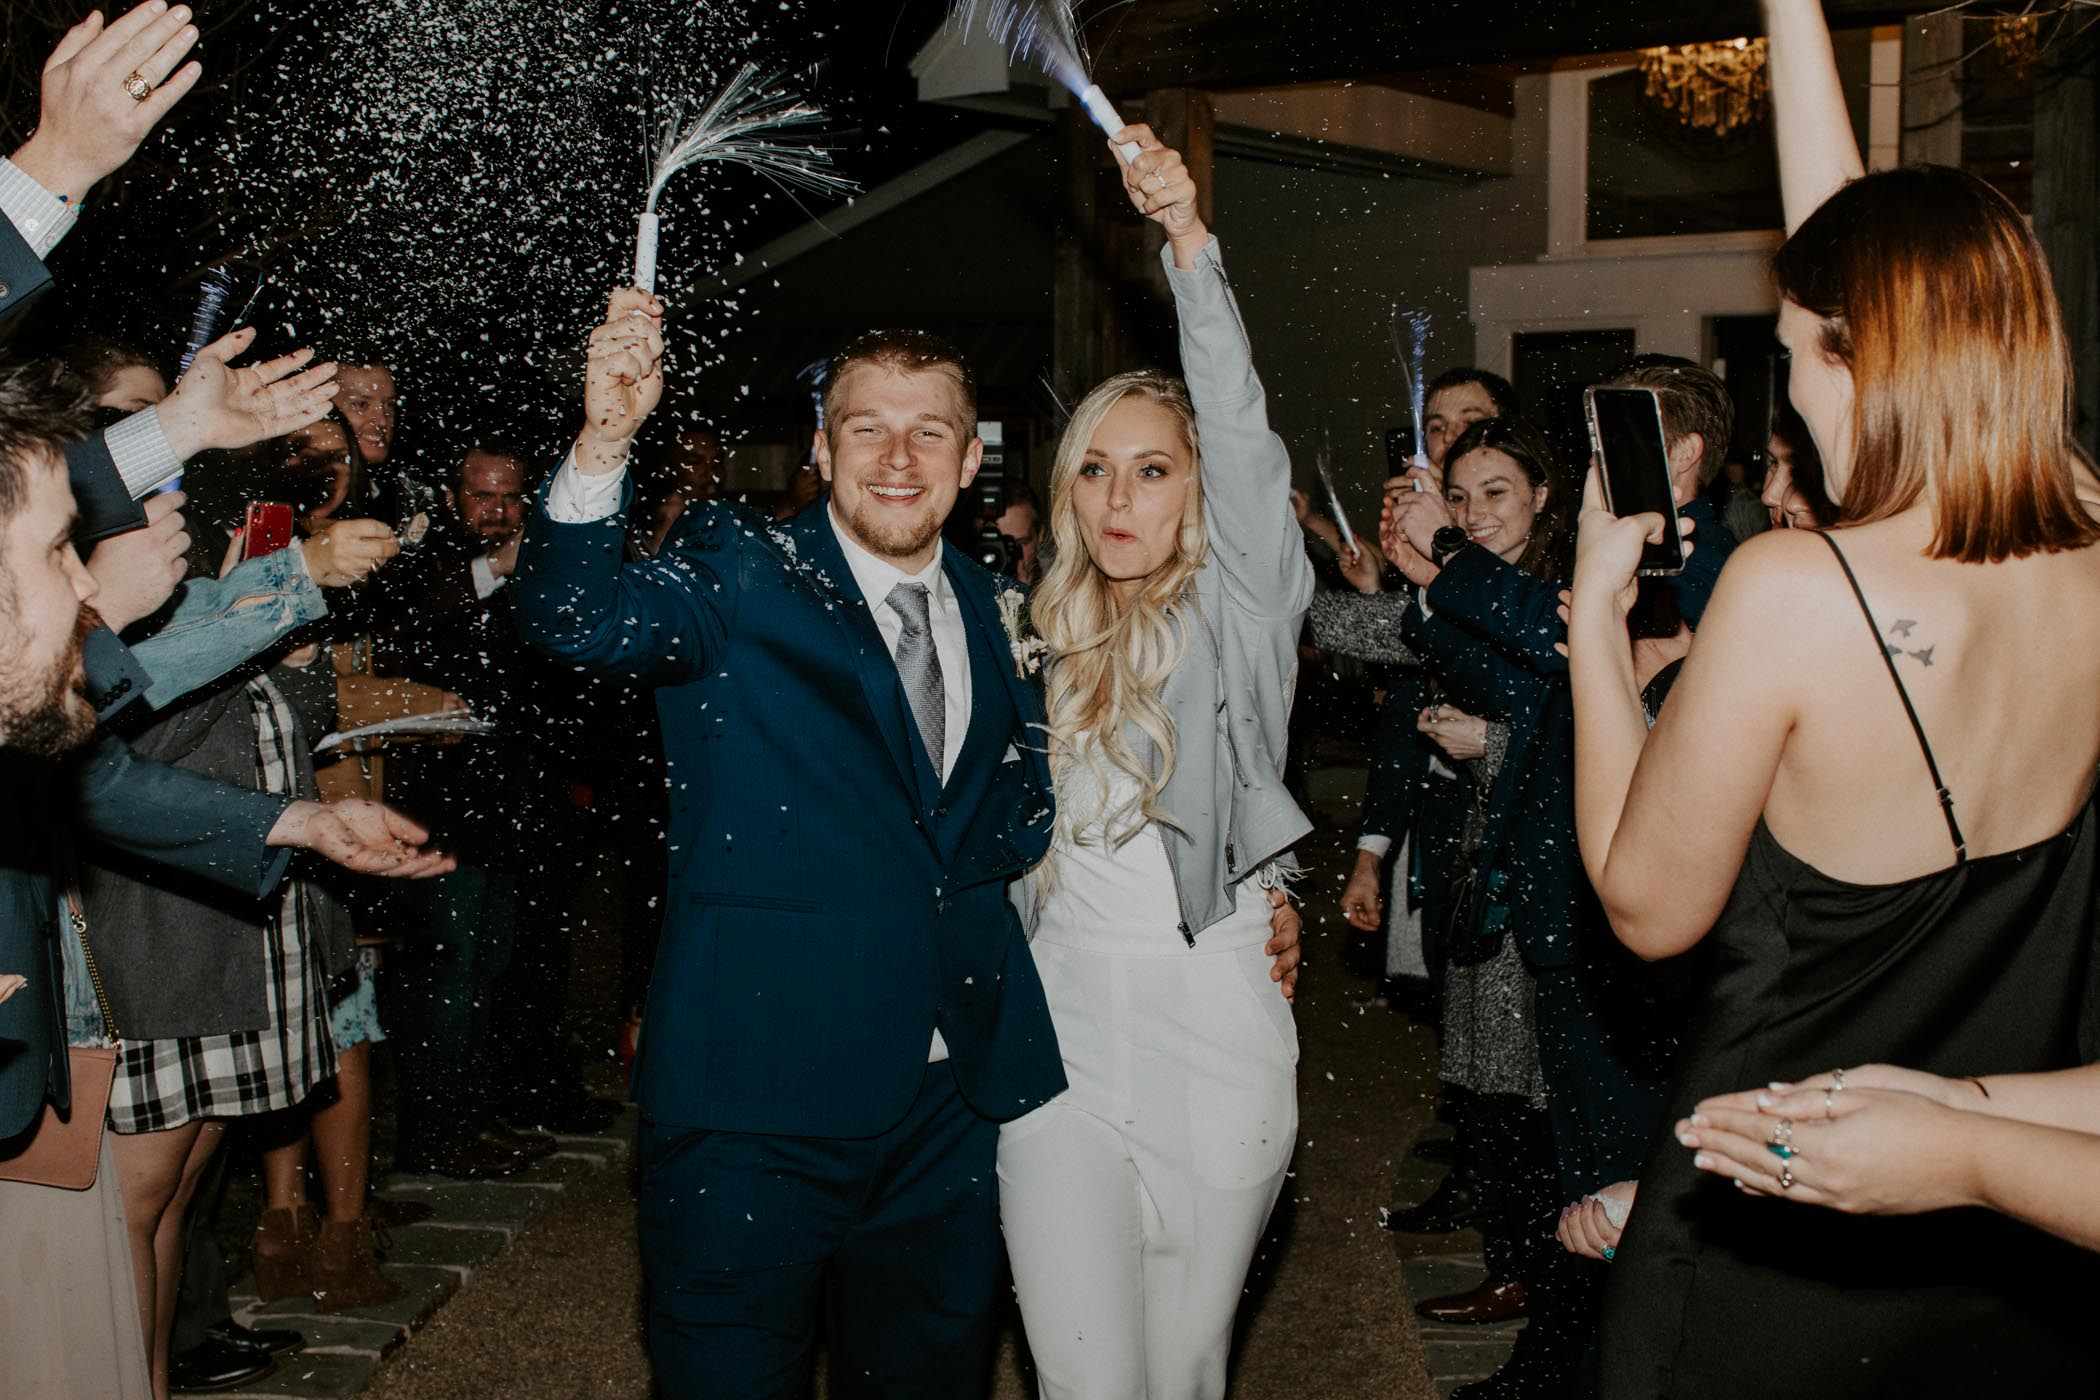 fun bride and groom running through guests during snow exit